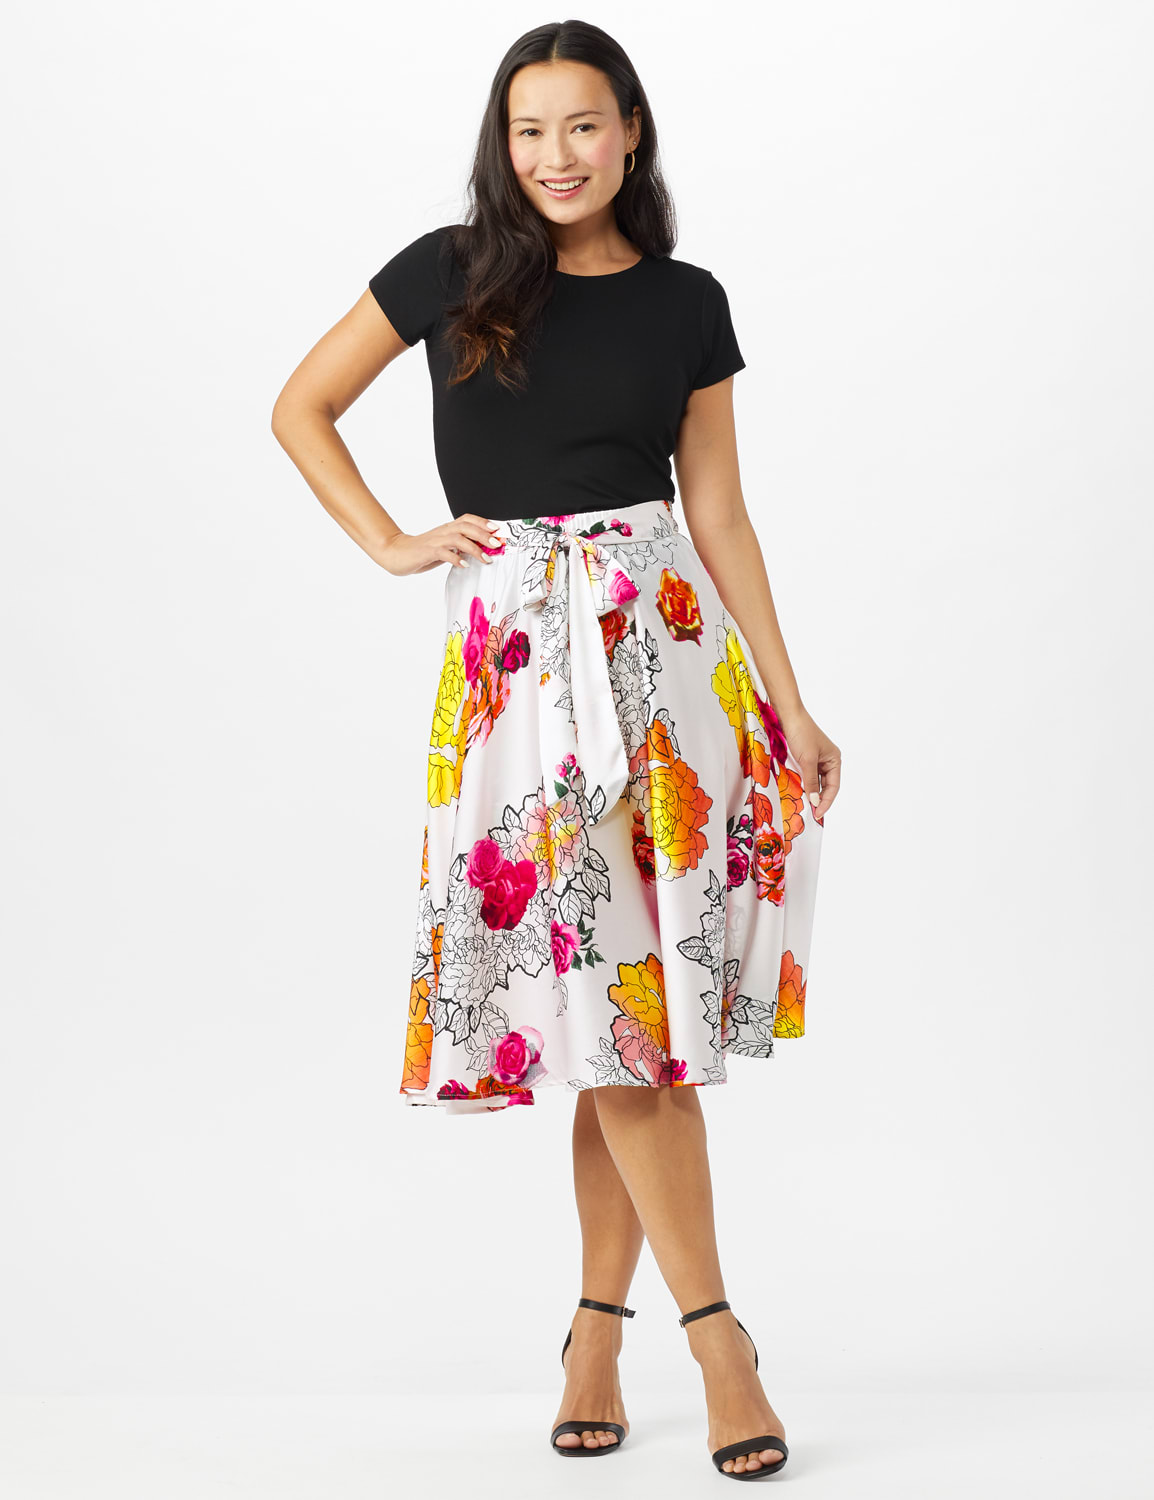 Printed Floral Skirt with All Around Elastic Waist and Tie - Red /Coral Rose - Front